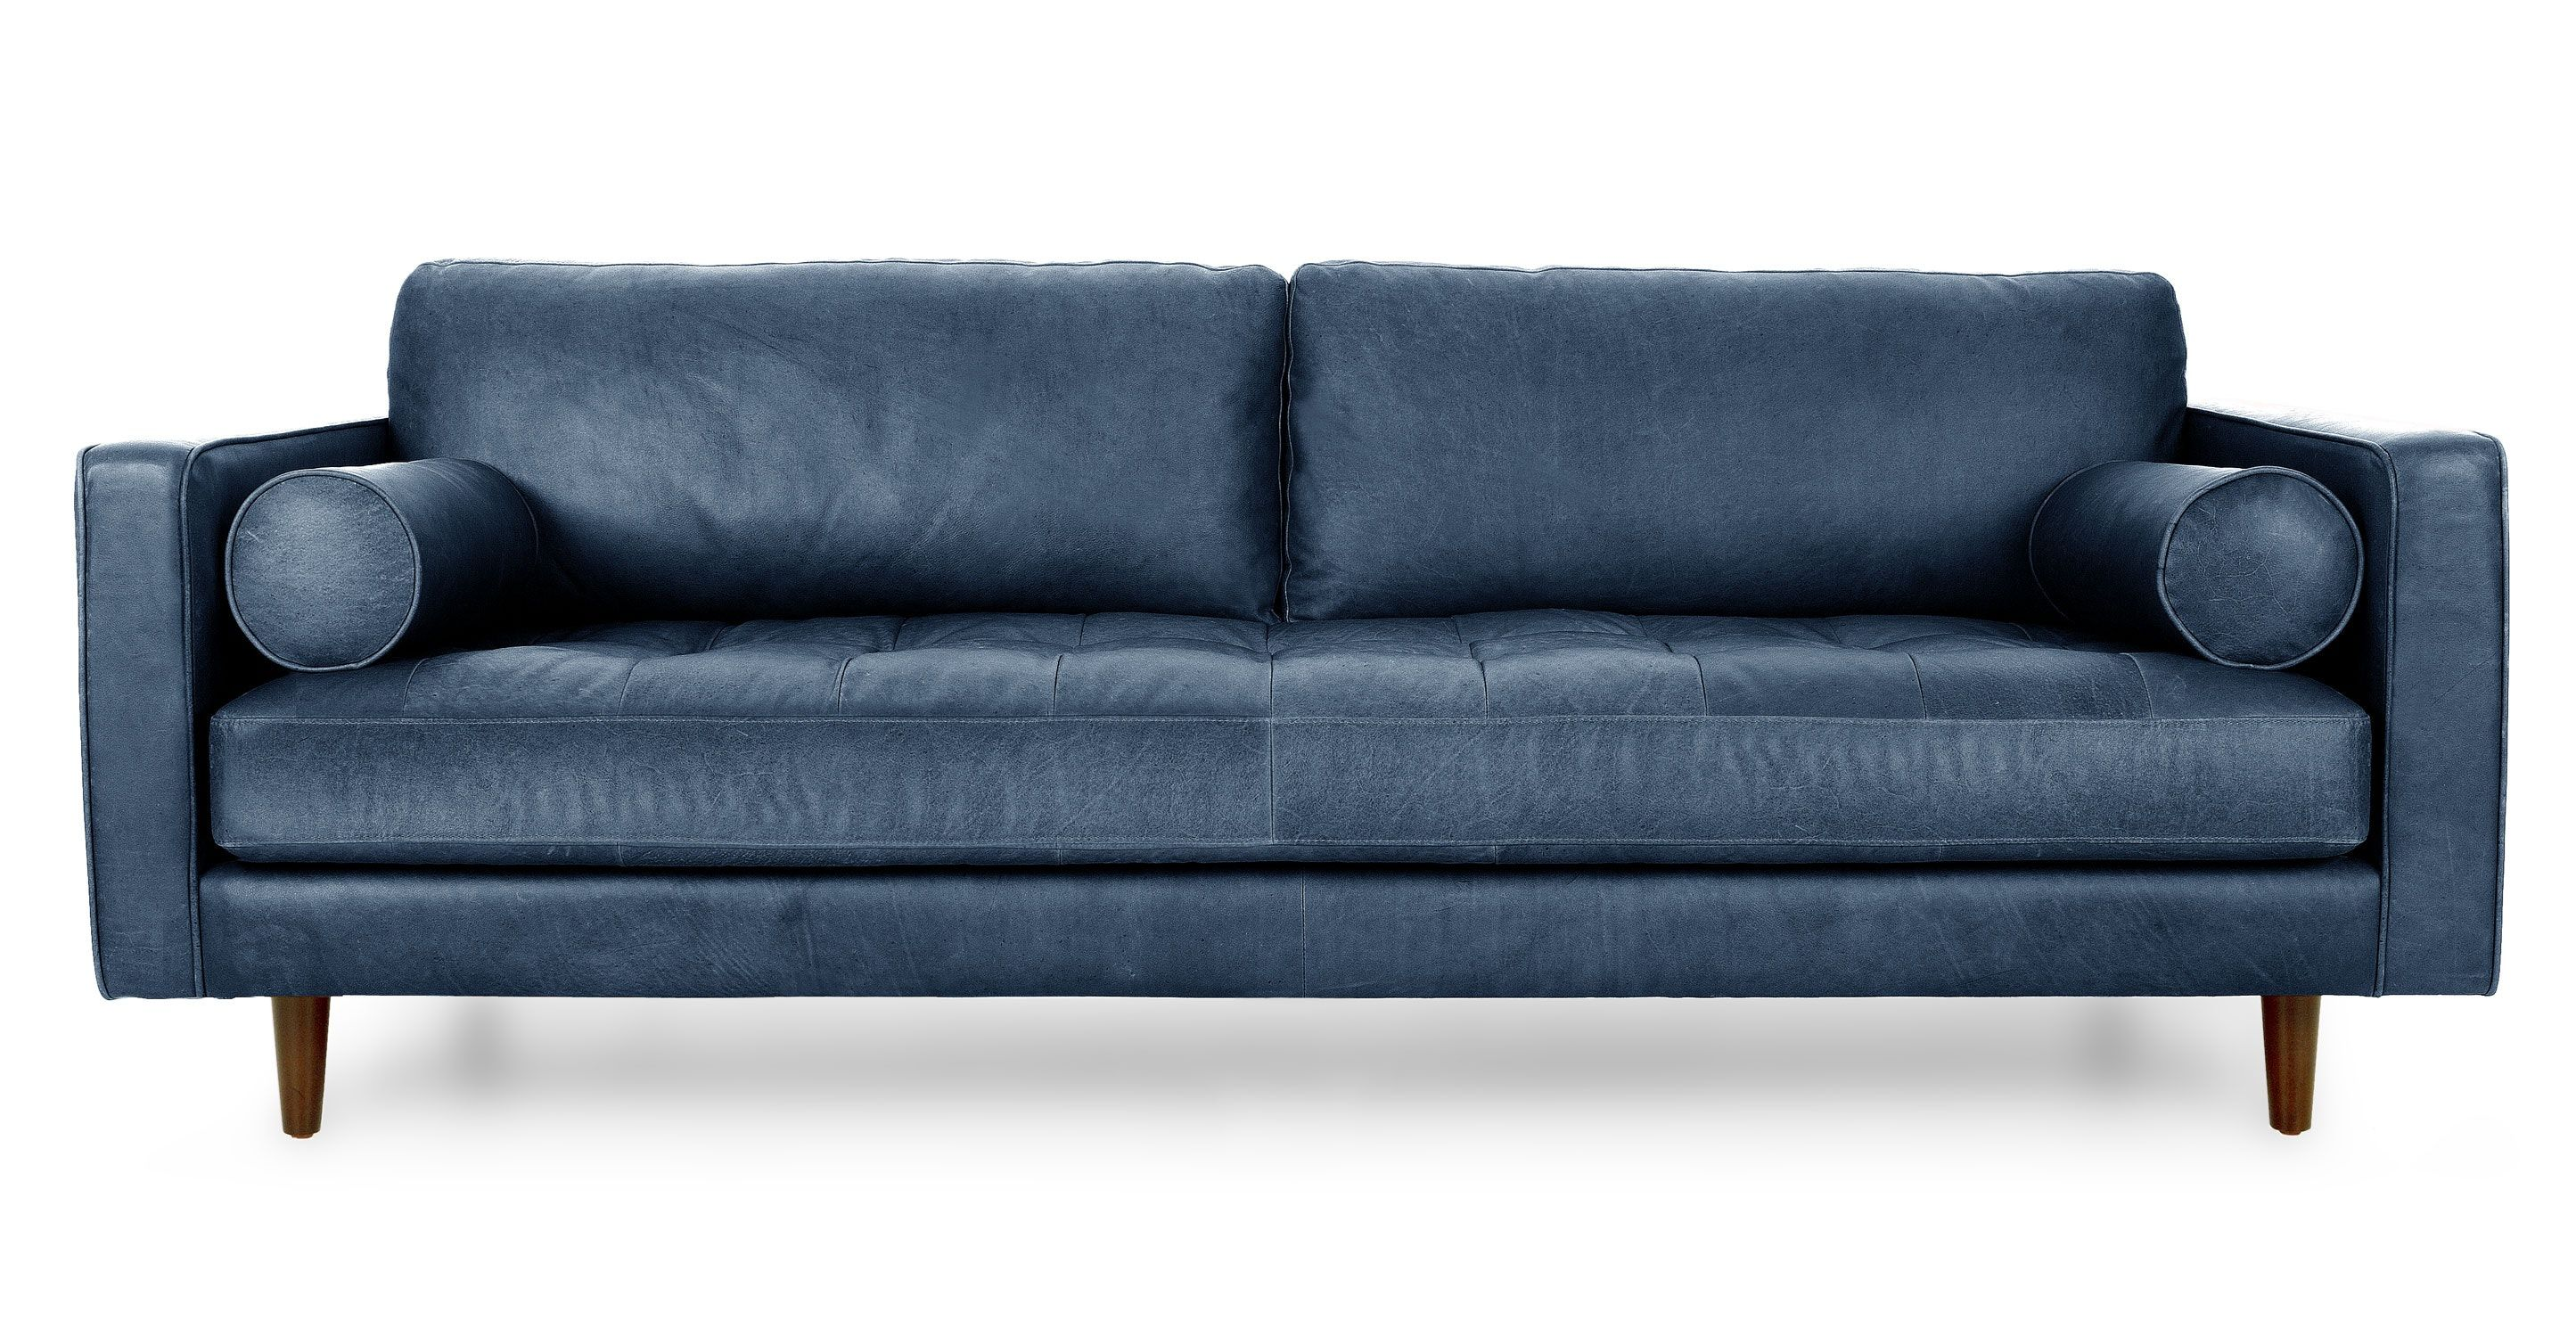 Sven Oxford Blue Sofa Blue Leather Sofa Blue Sofa Modern